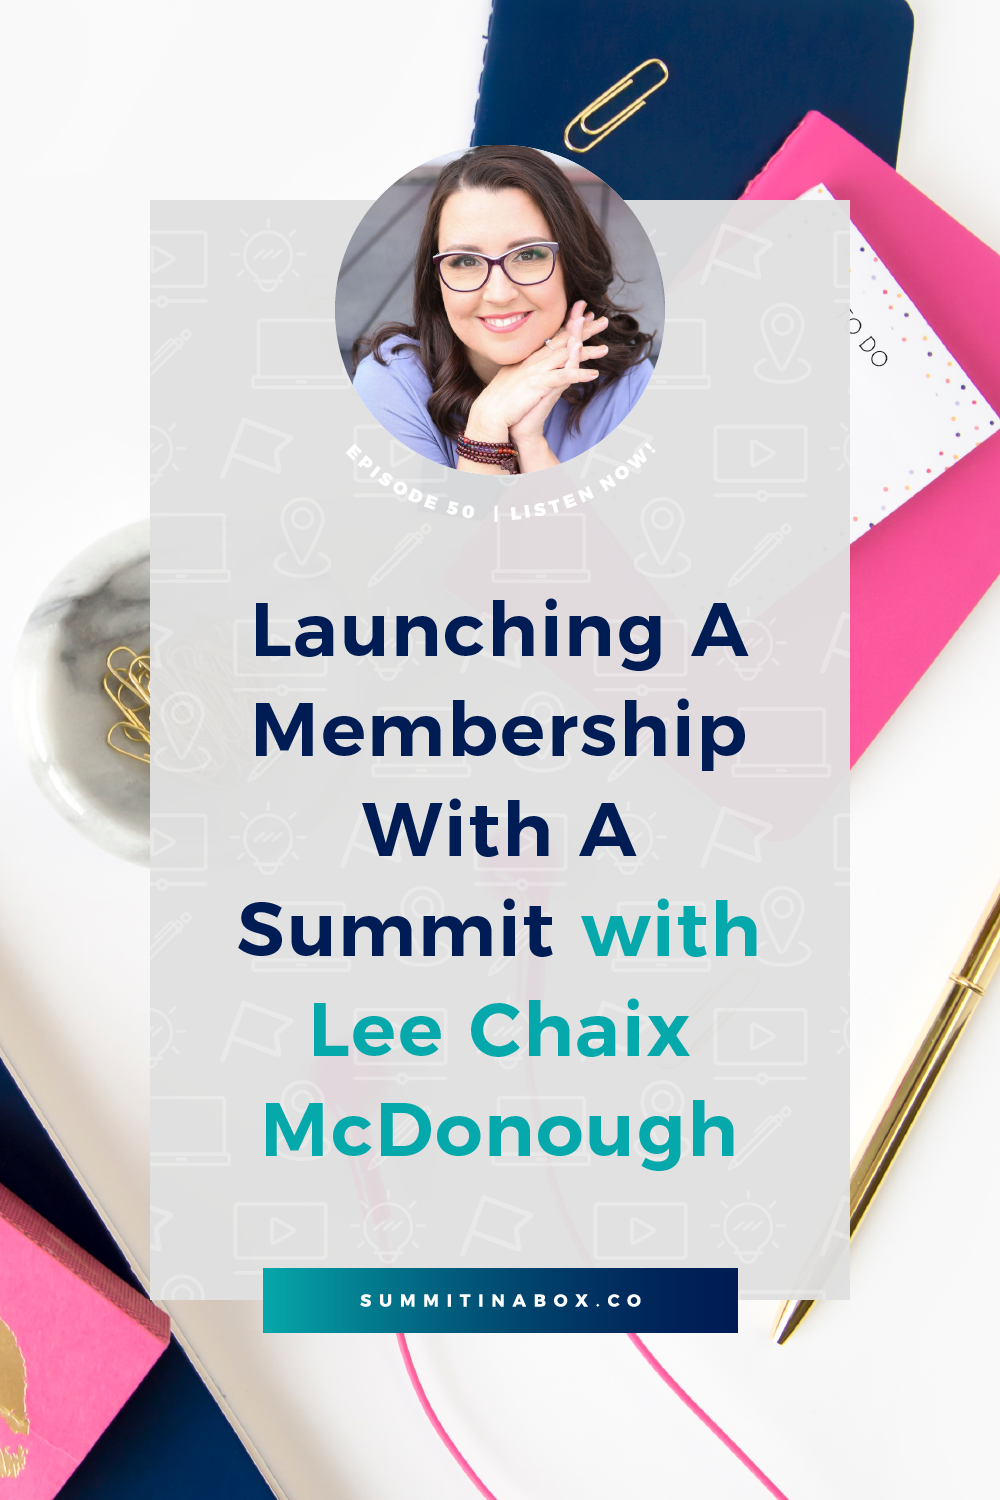 Using a virtual summit to grow your membership site is a powerful strategy. Let's cover one option for how to launch a membership through a summit!